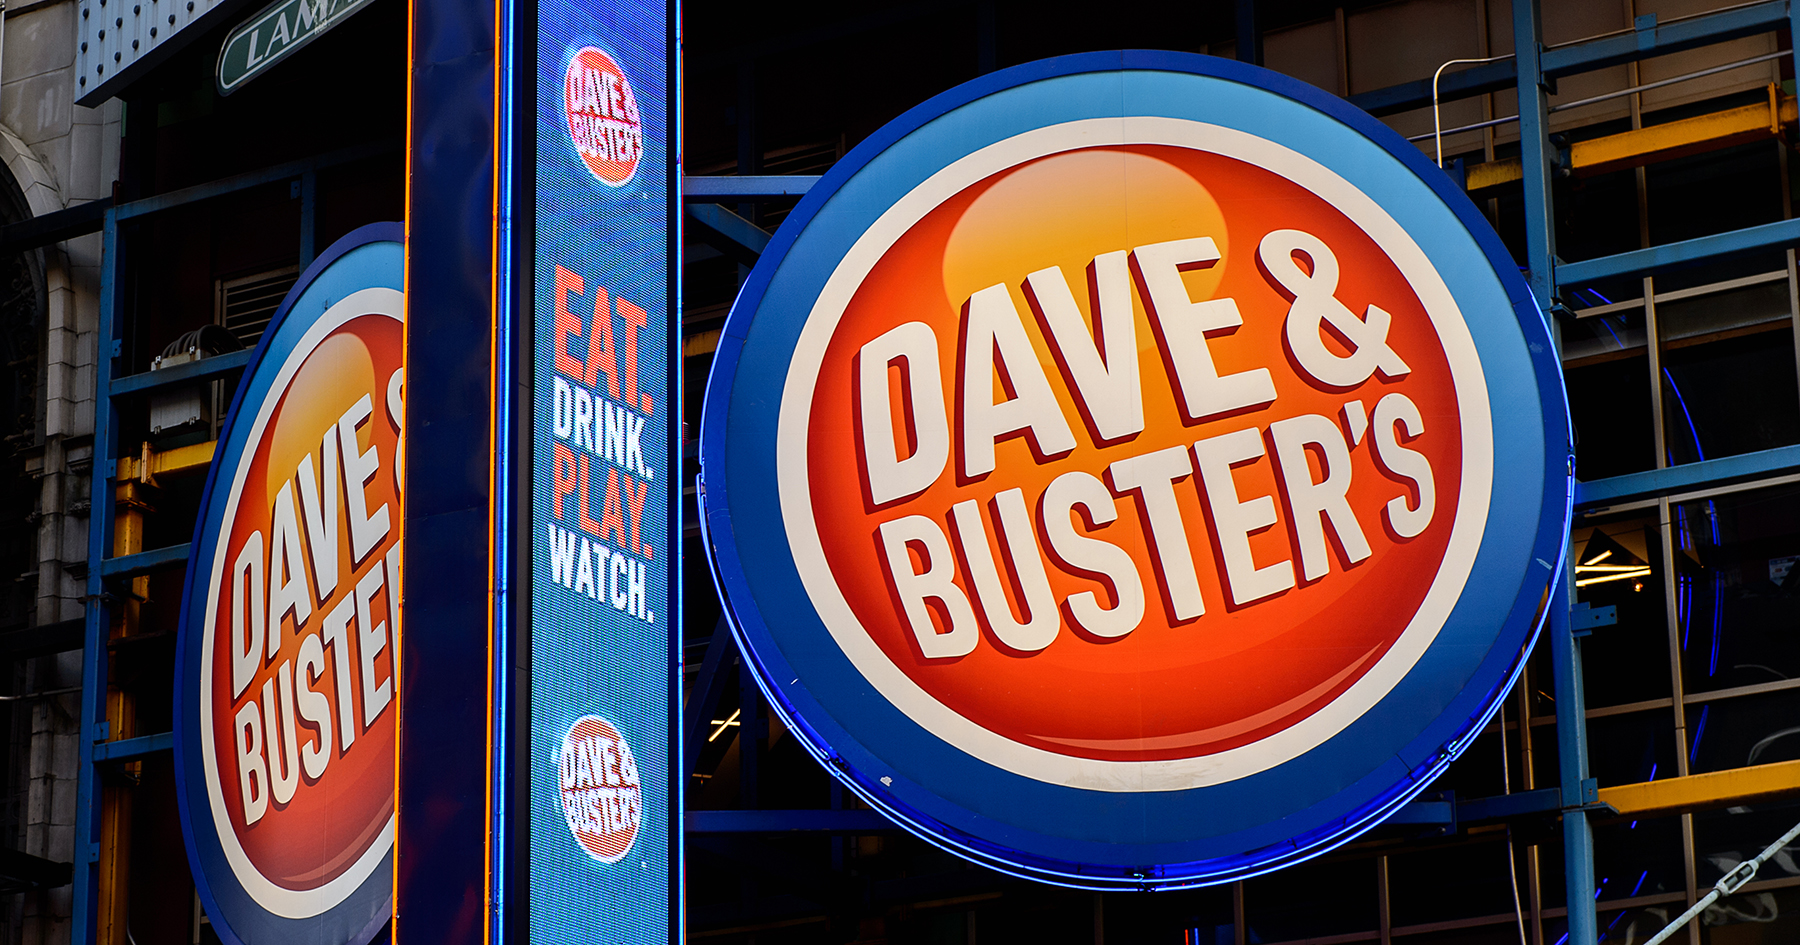 Dave & Buster's weighs its options at a life-or-death moment for the company